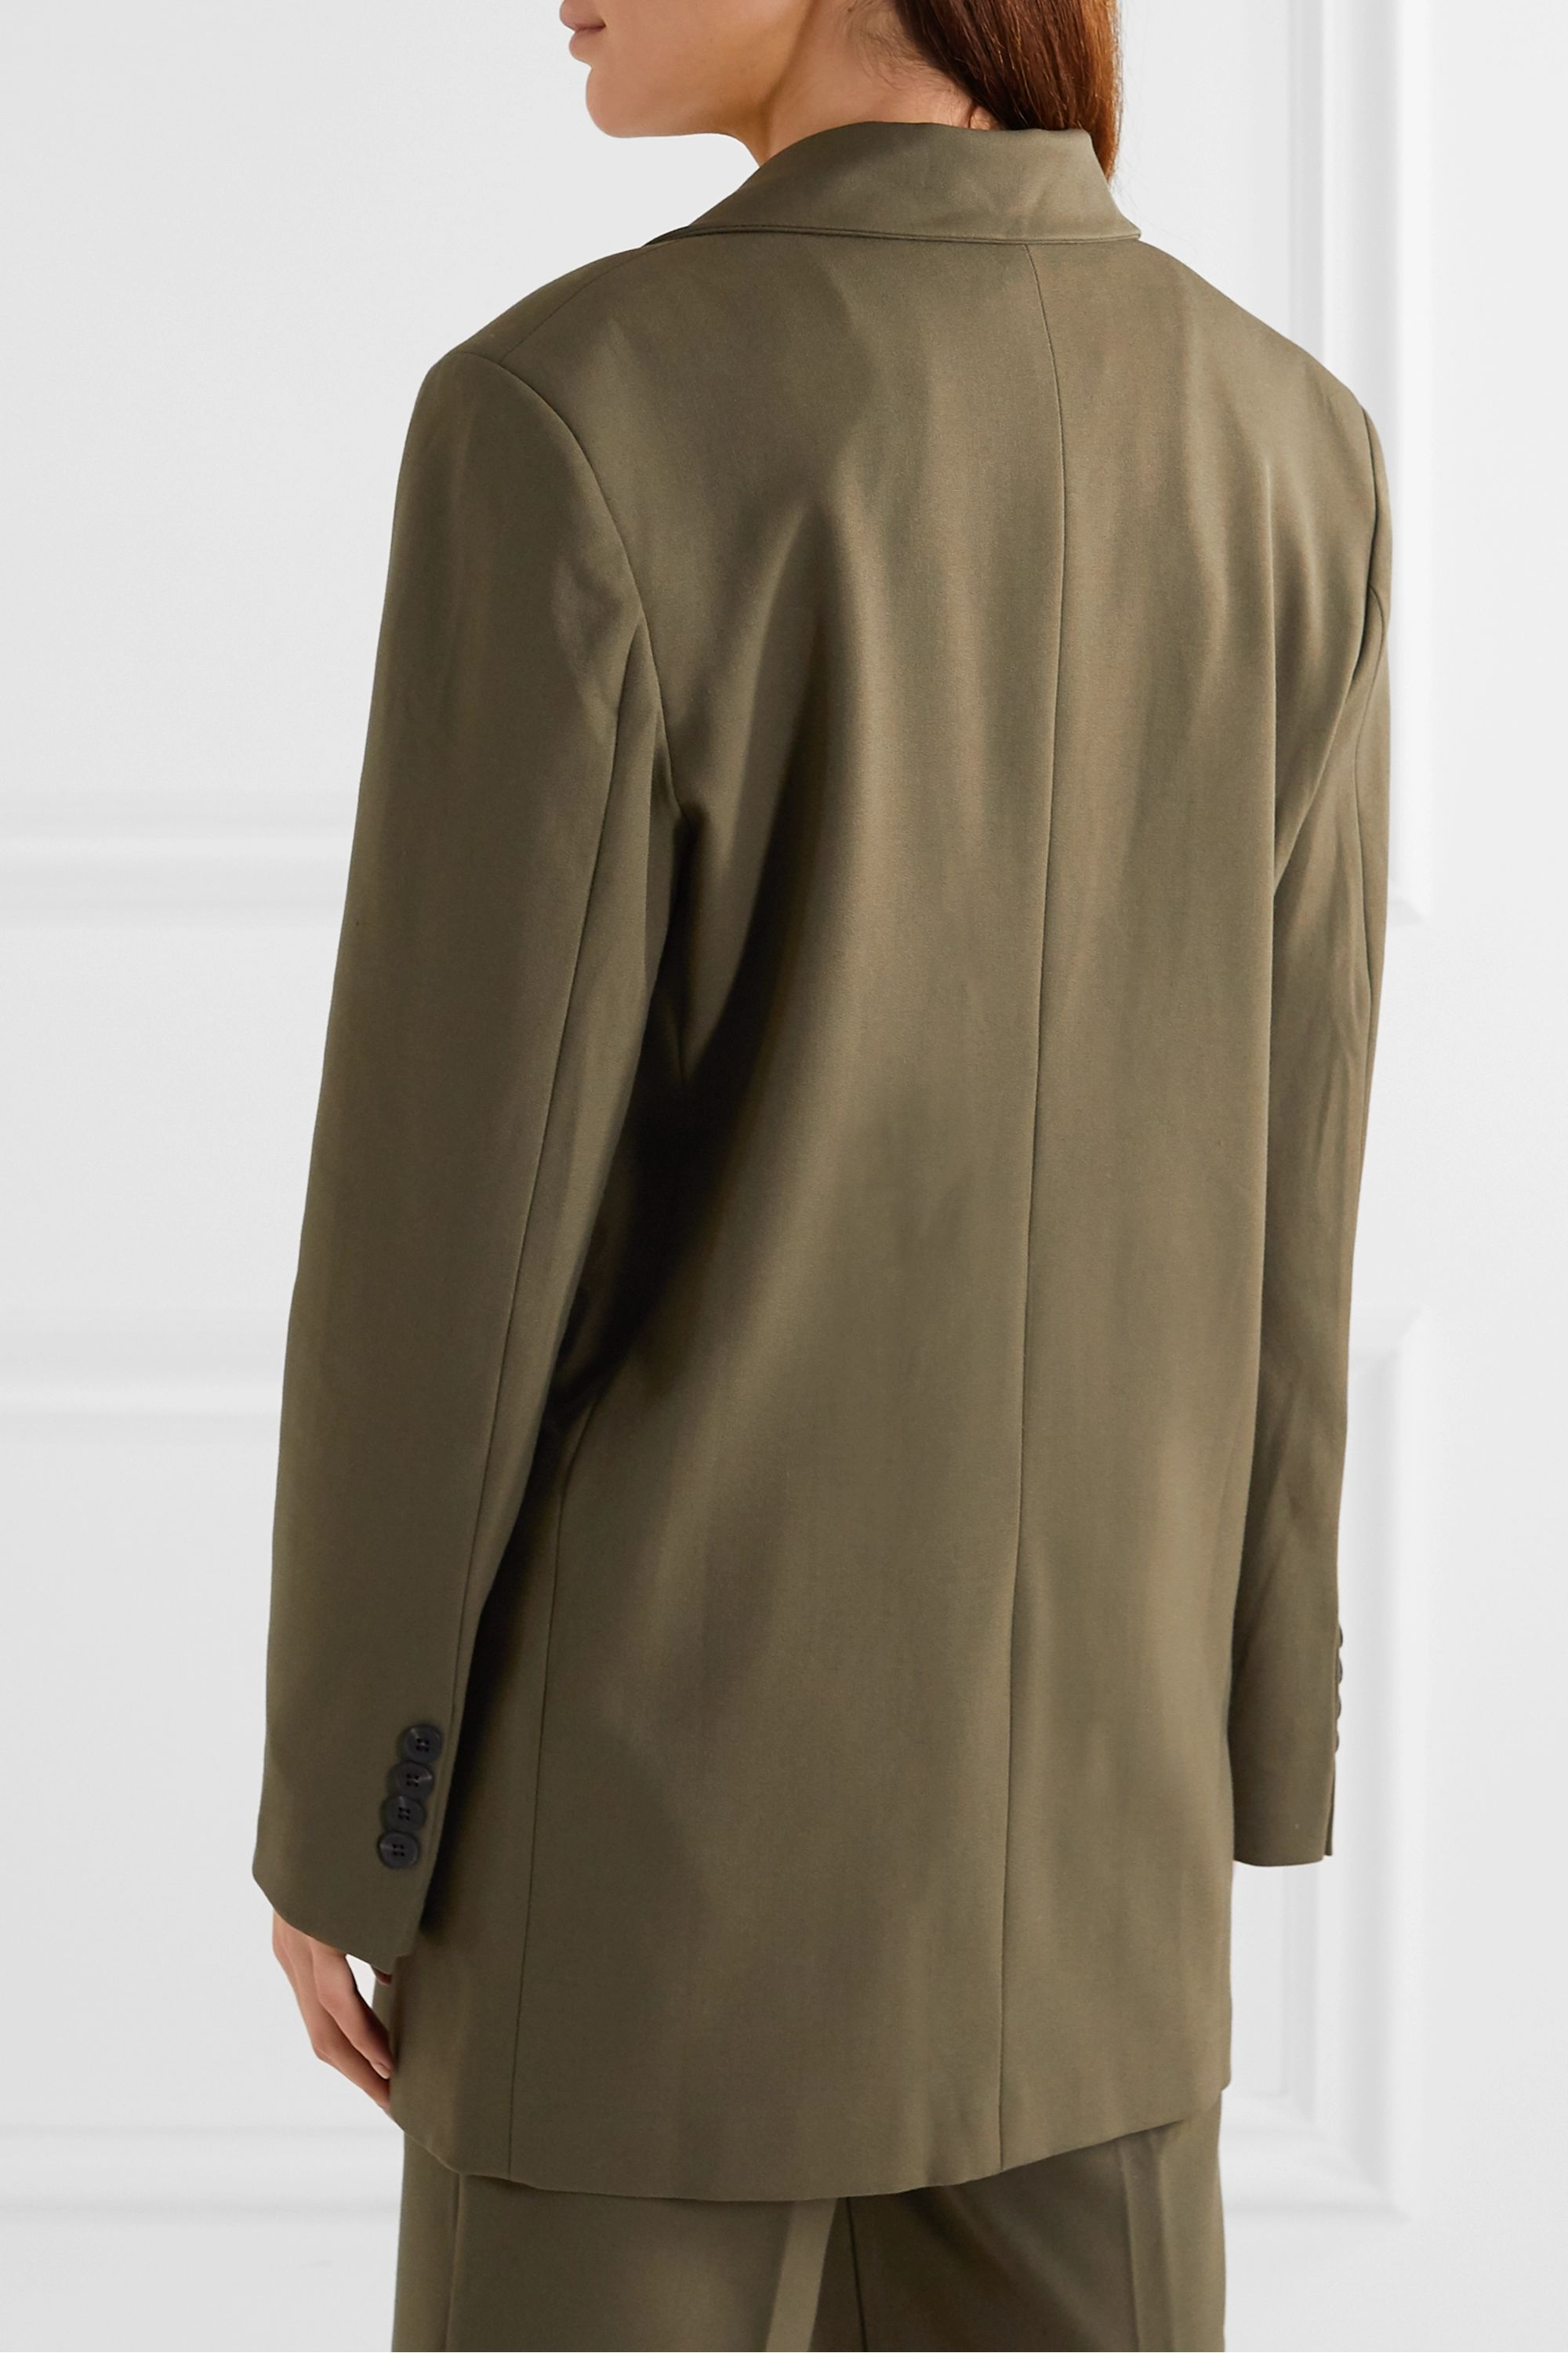 Frankie Shop Julie double-breasted gabardine blazer